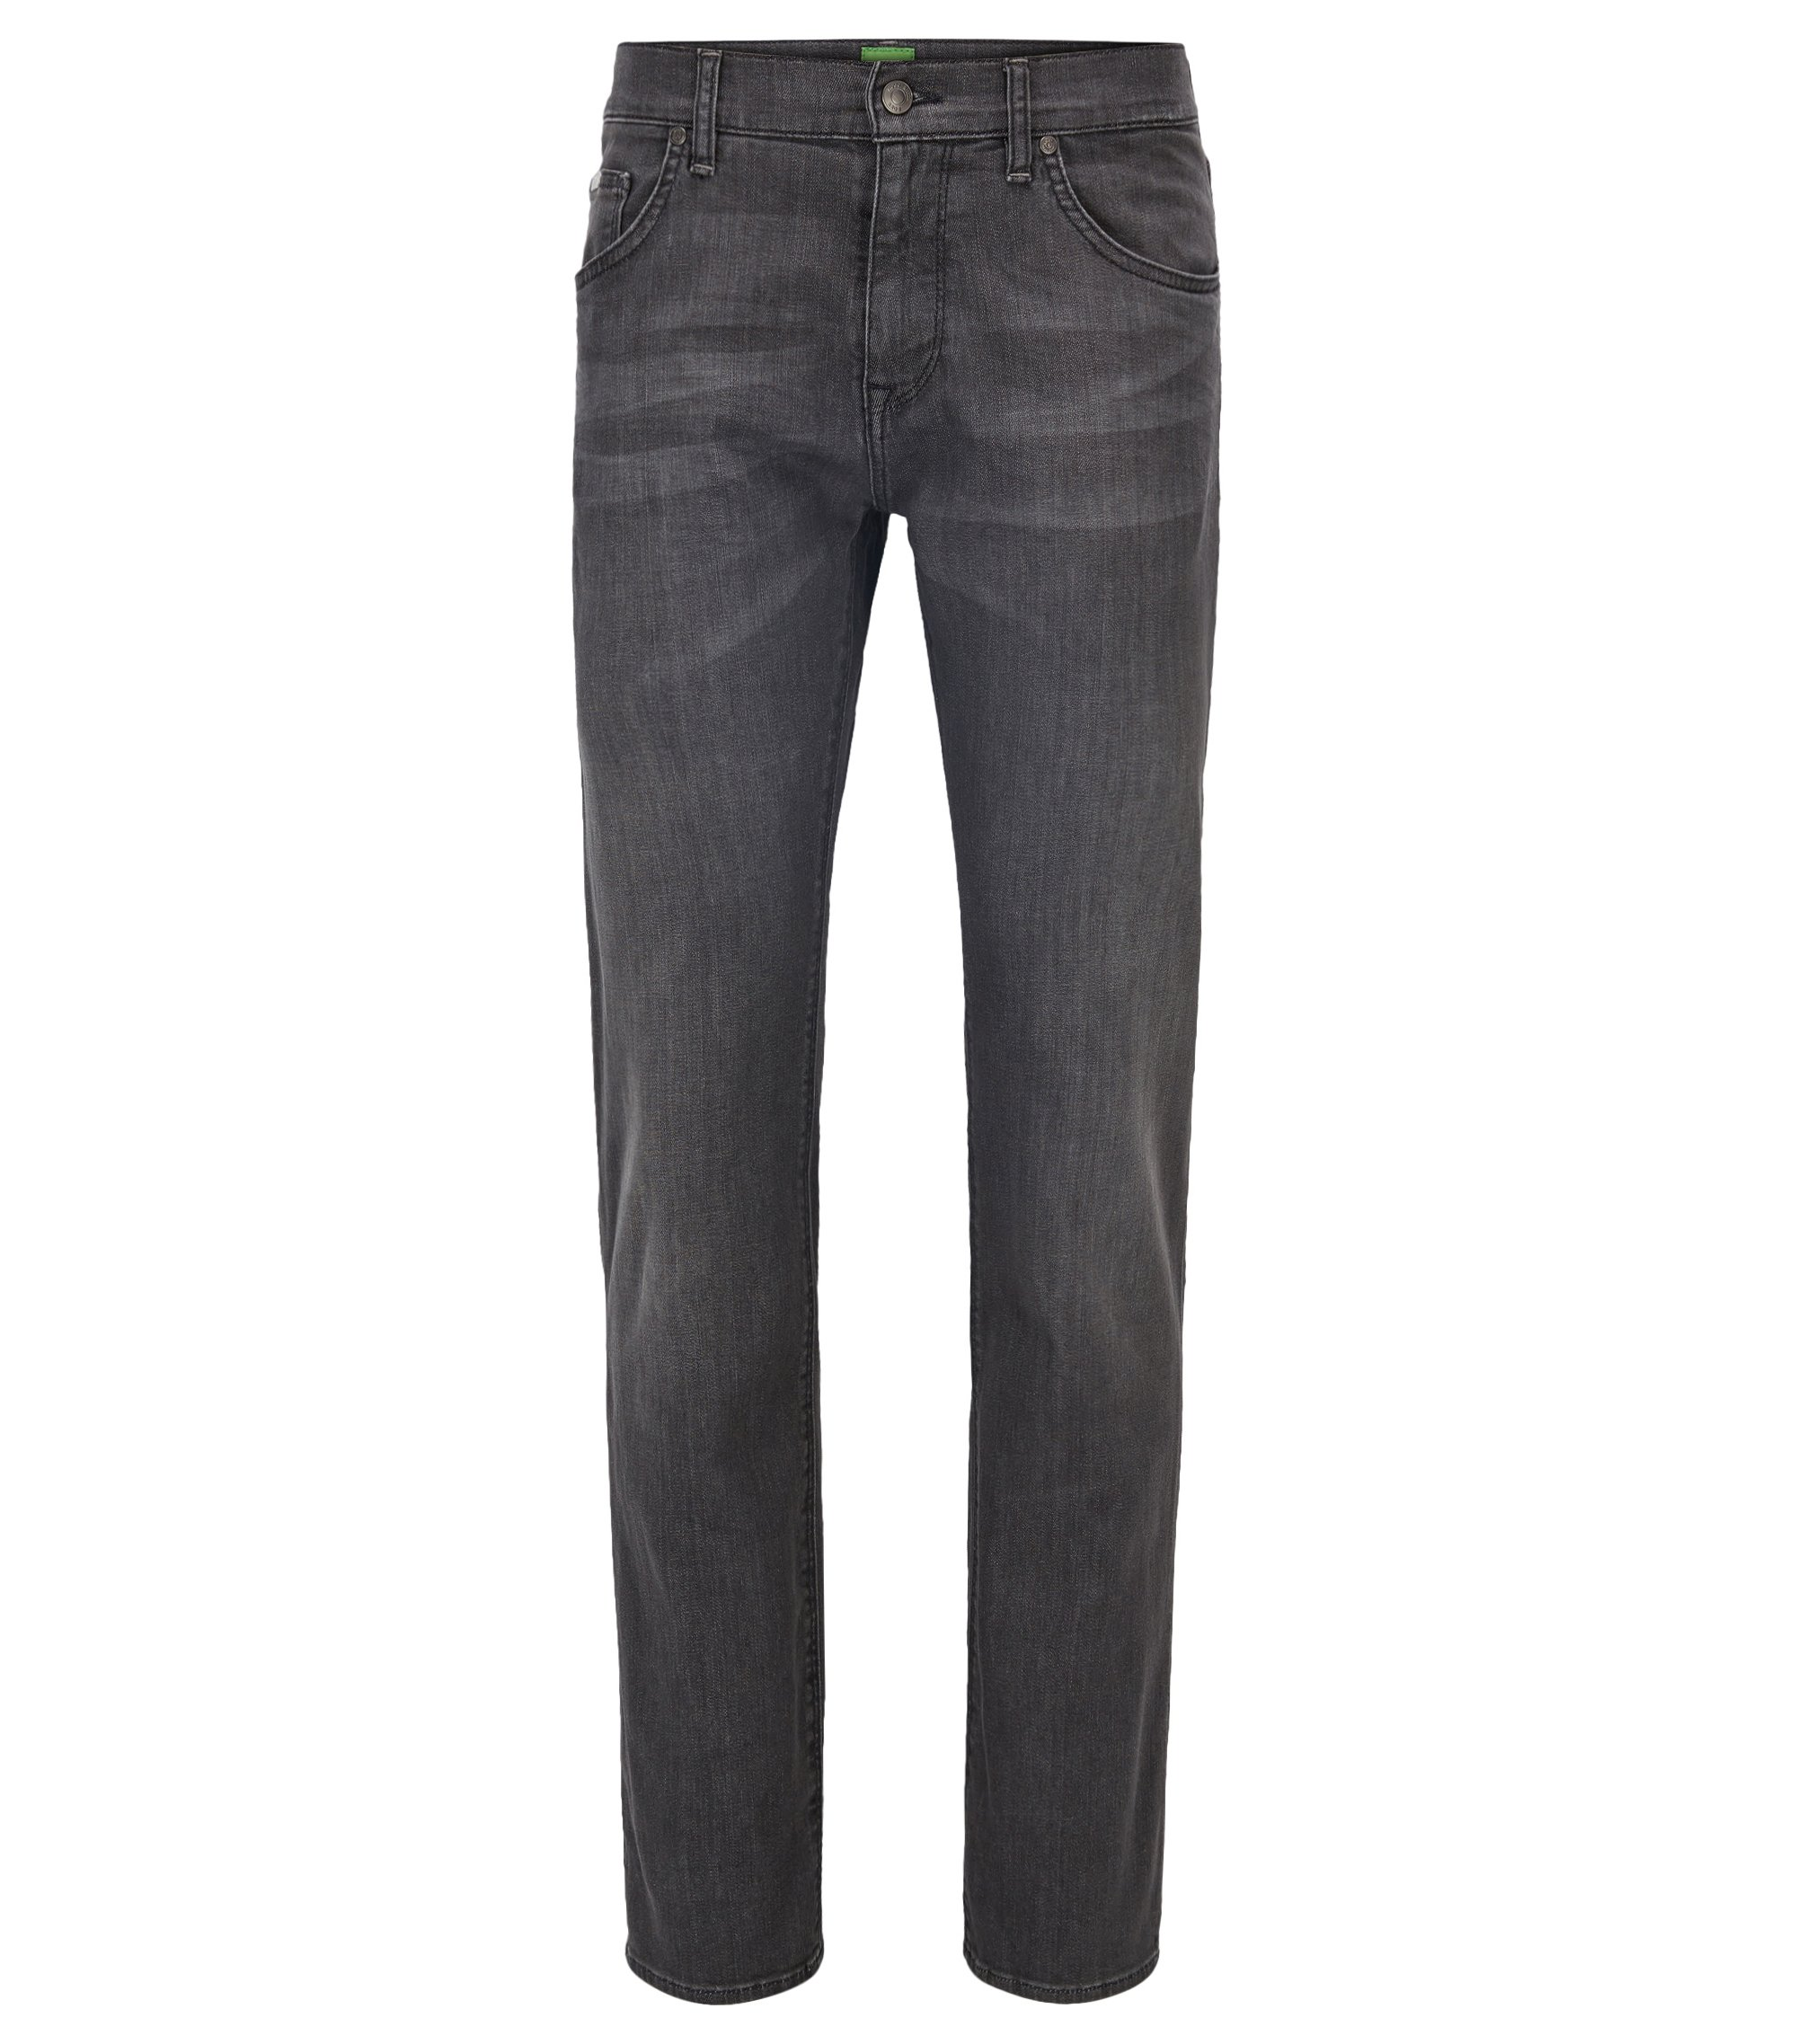 Jeans Regular Fit en denim stretch anthracite, Gris sombre